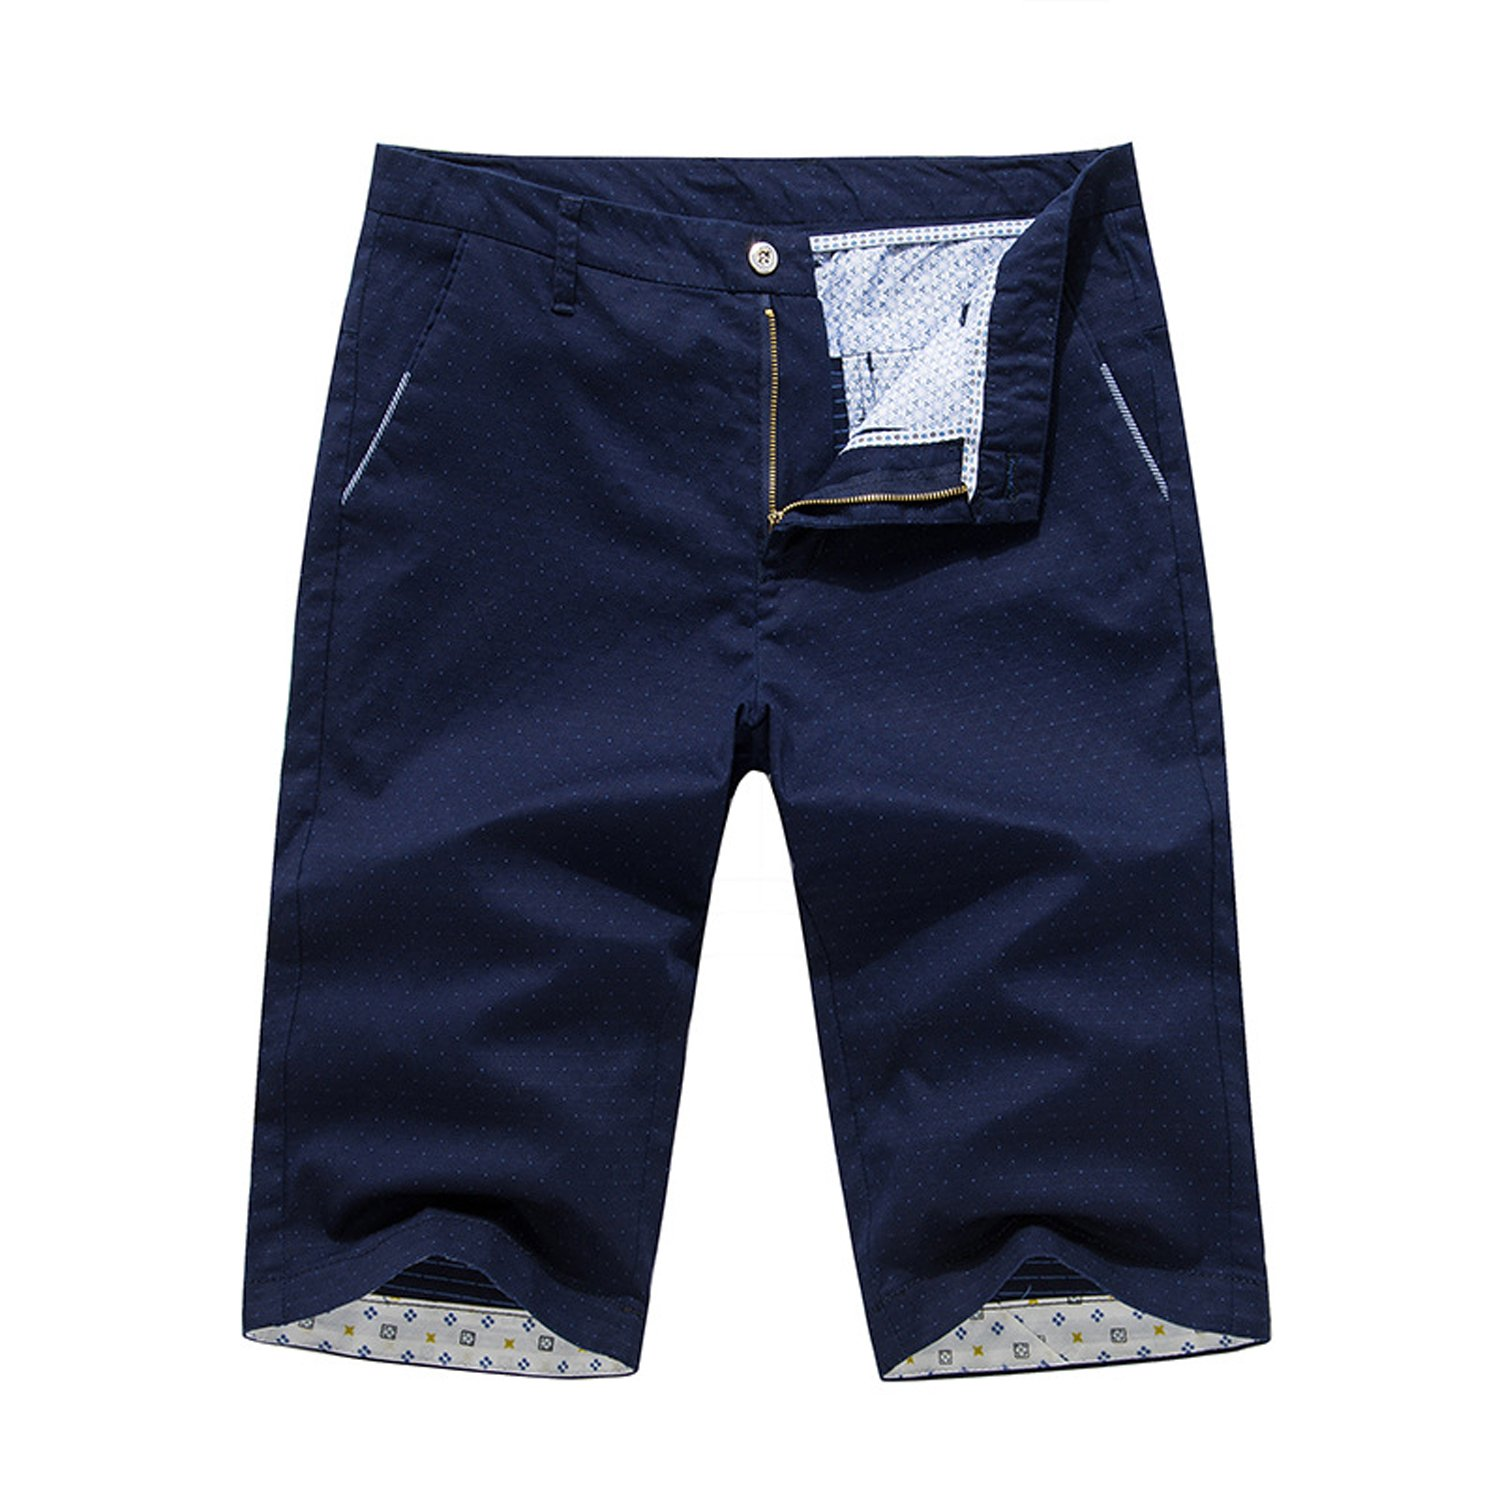 POPOOL PPYF03 Men's Summer Casual Fashion Five Points Shorts